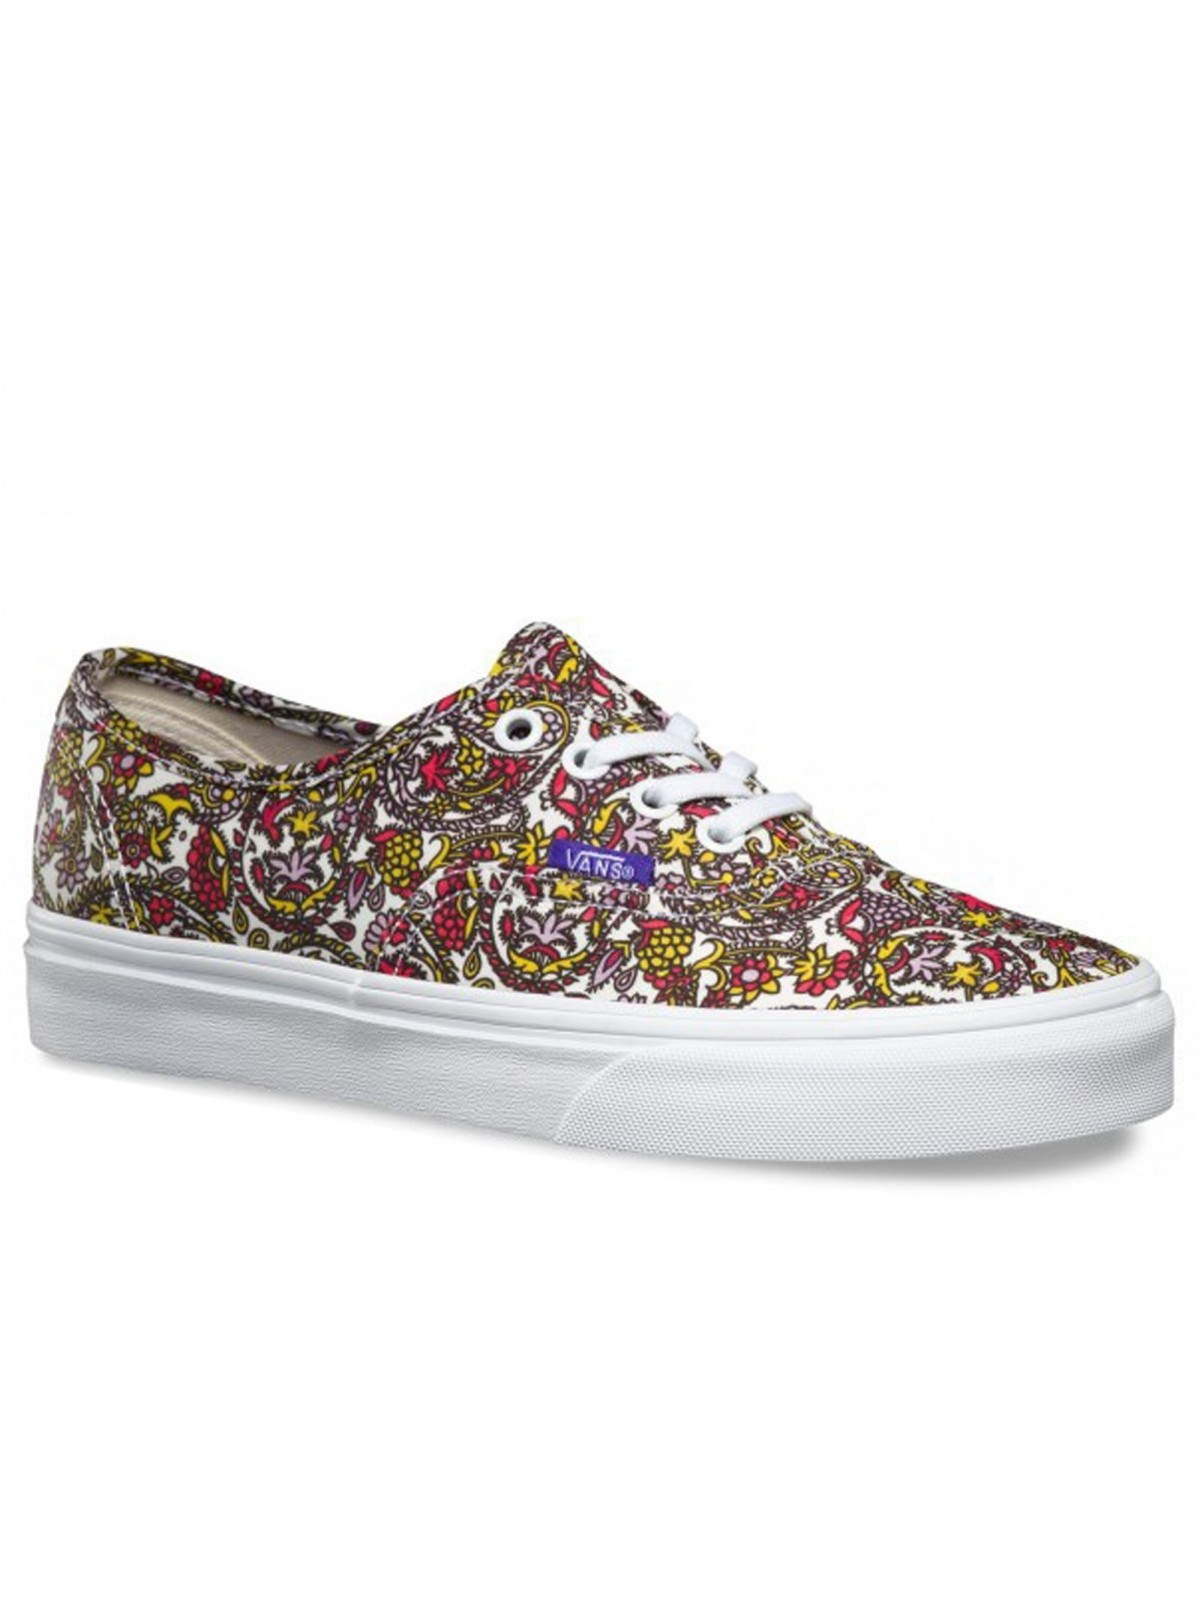 Vans Z Authentic toile liberty paisley